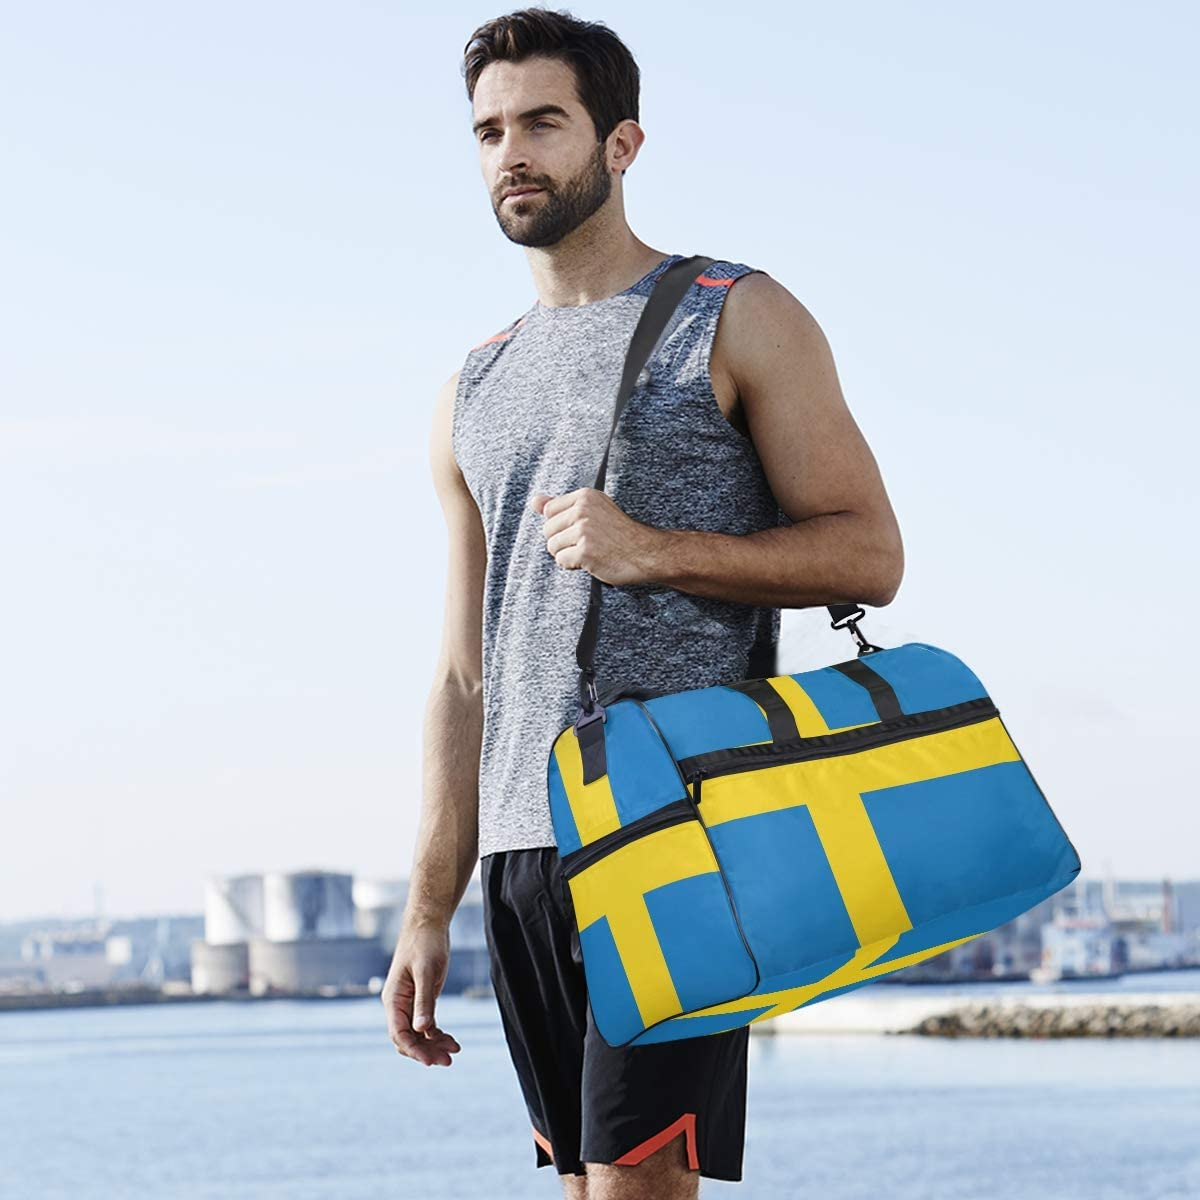 MUOOUM Flag Of The Sweden Large Duffle Bags Sports Gym Bag with Shoes Compartment for Men and Women